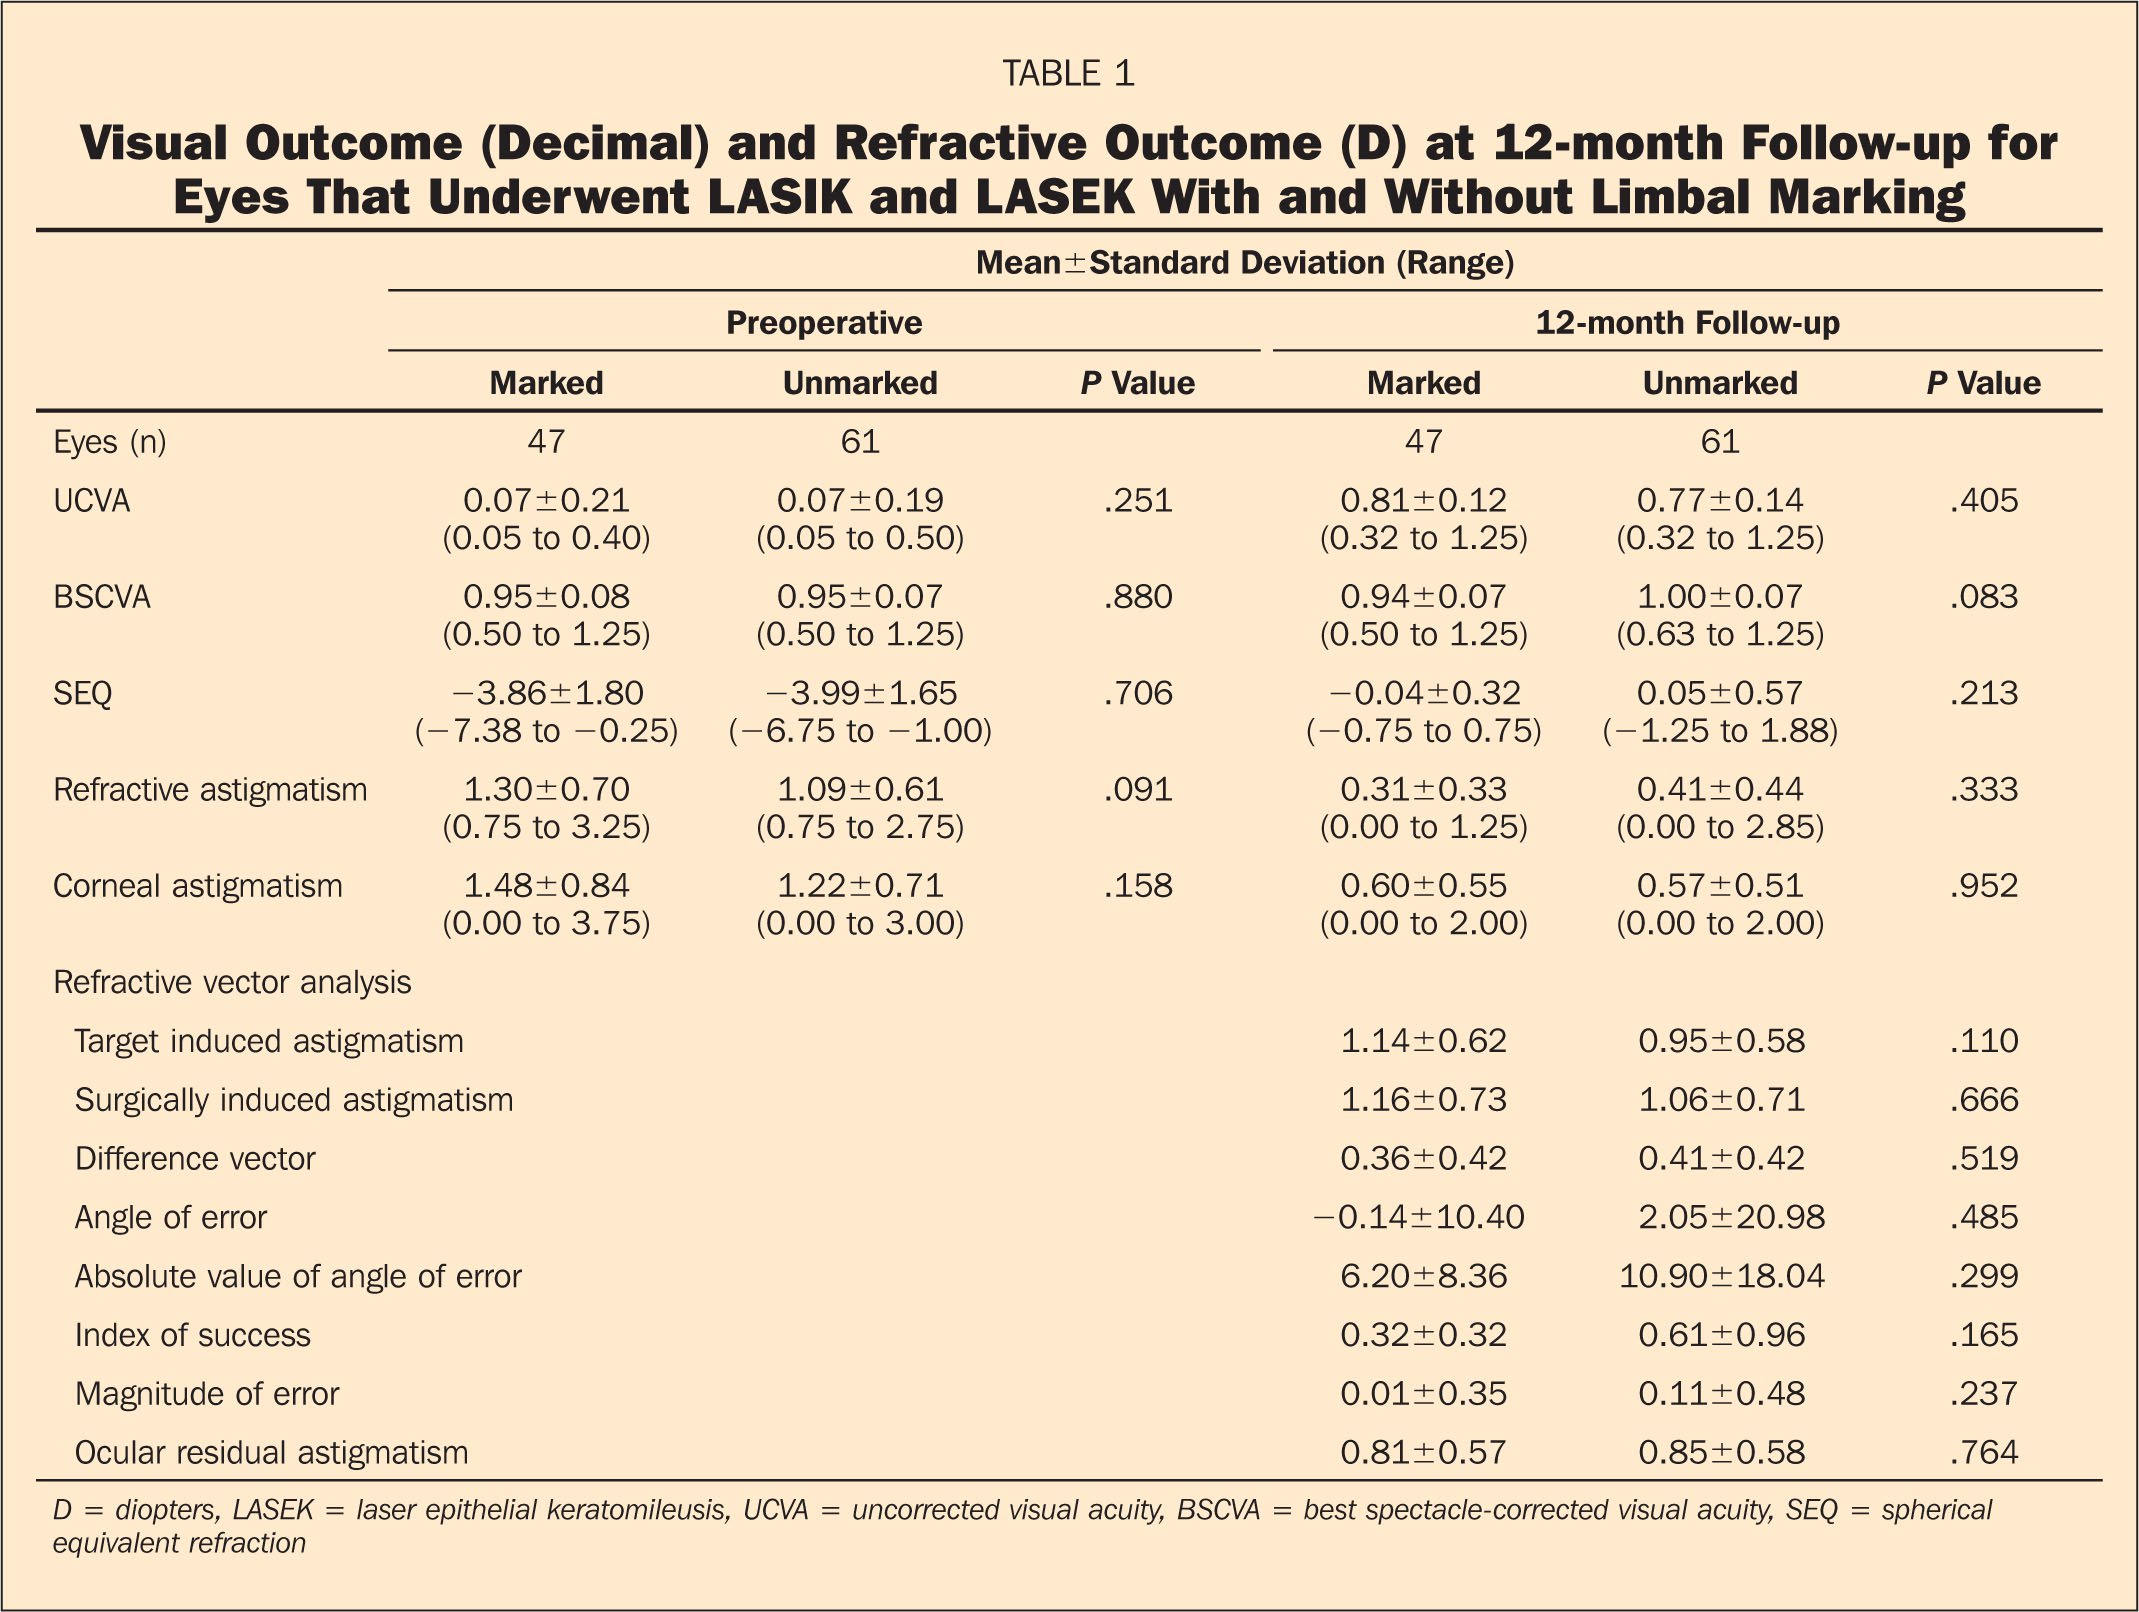 Visual Outcome (Decimal) and Refractive Outcome (D) at 12-Month Follow-Up for Eyes that Underwent LASIK and LASEK with and Without Limbal Marking